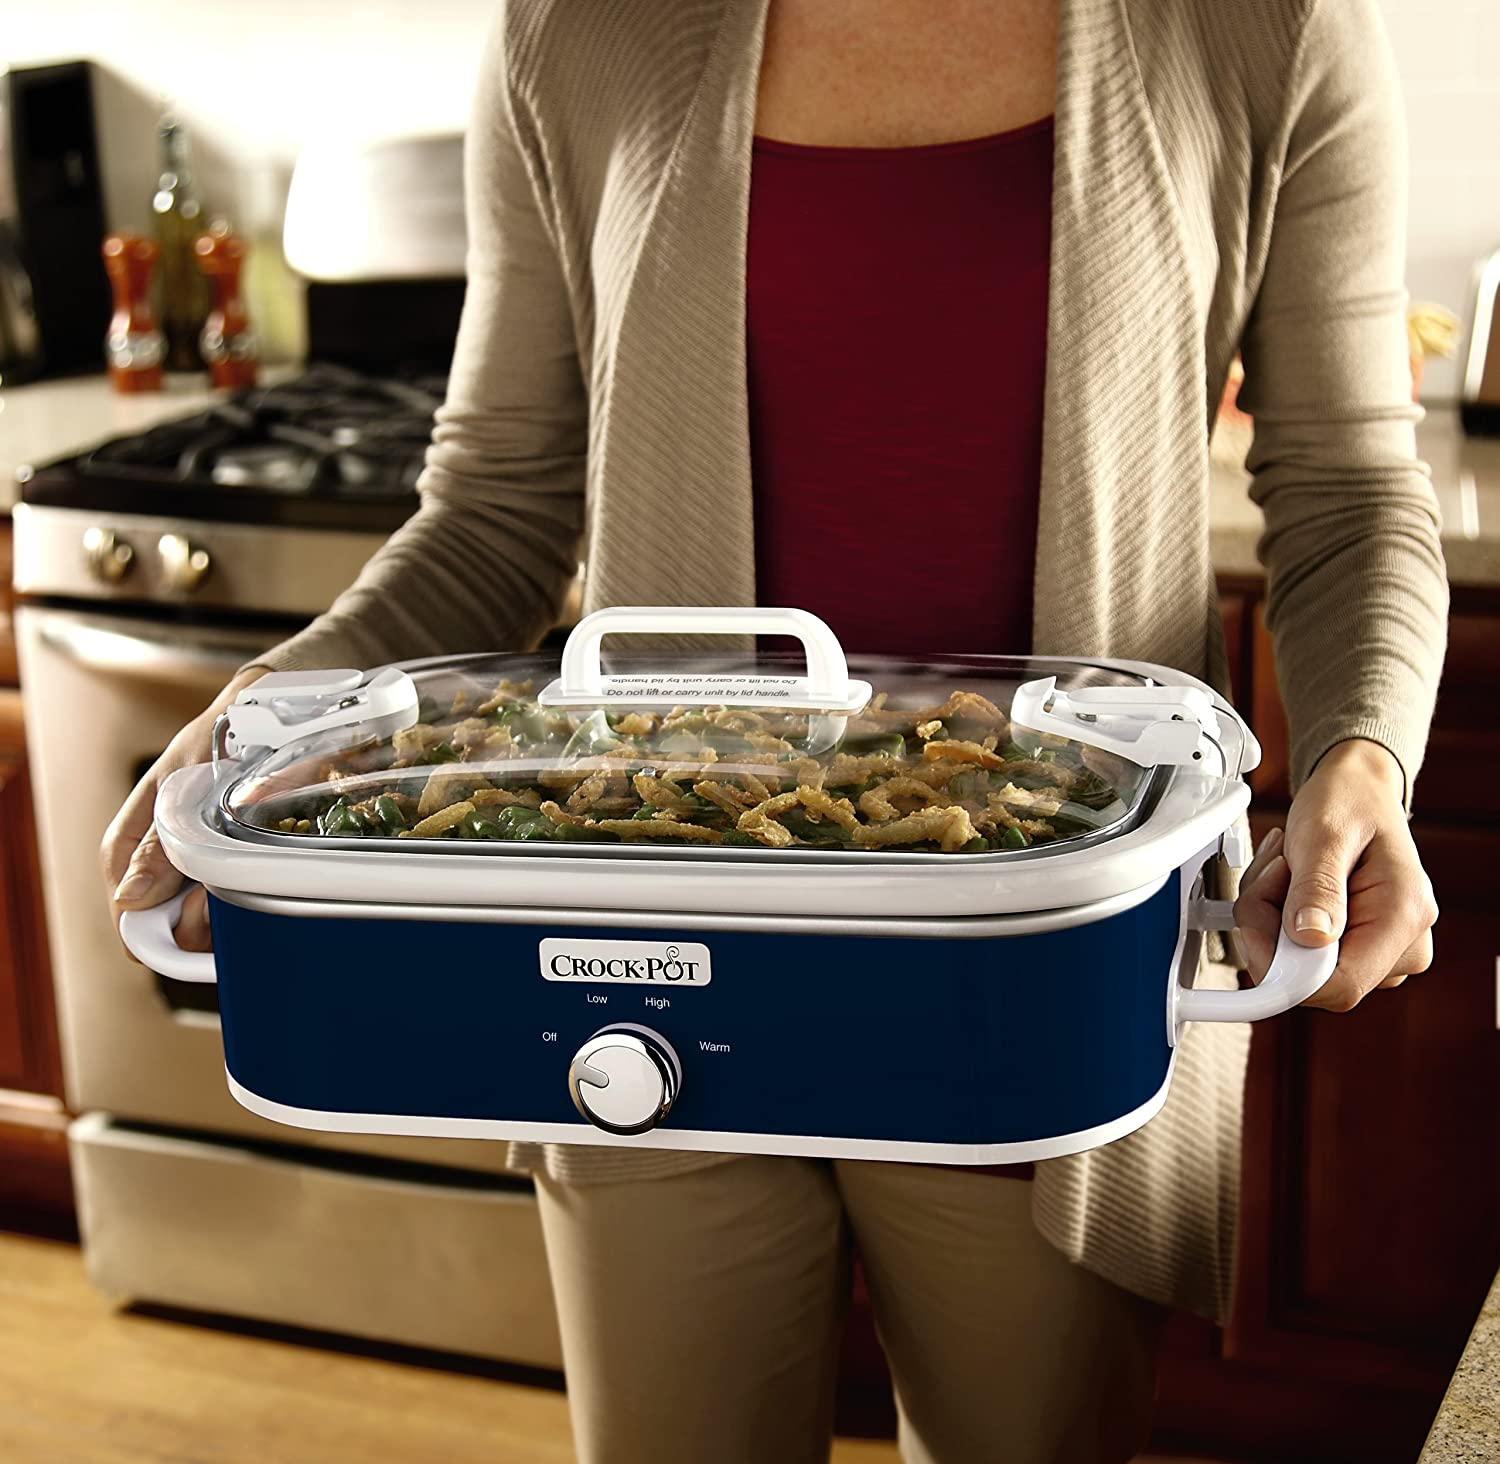 Crock Pot Casserole Slow Cooker - Check Amazon's Price